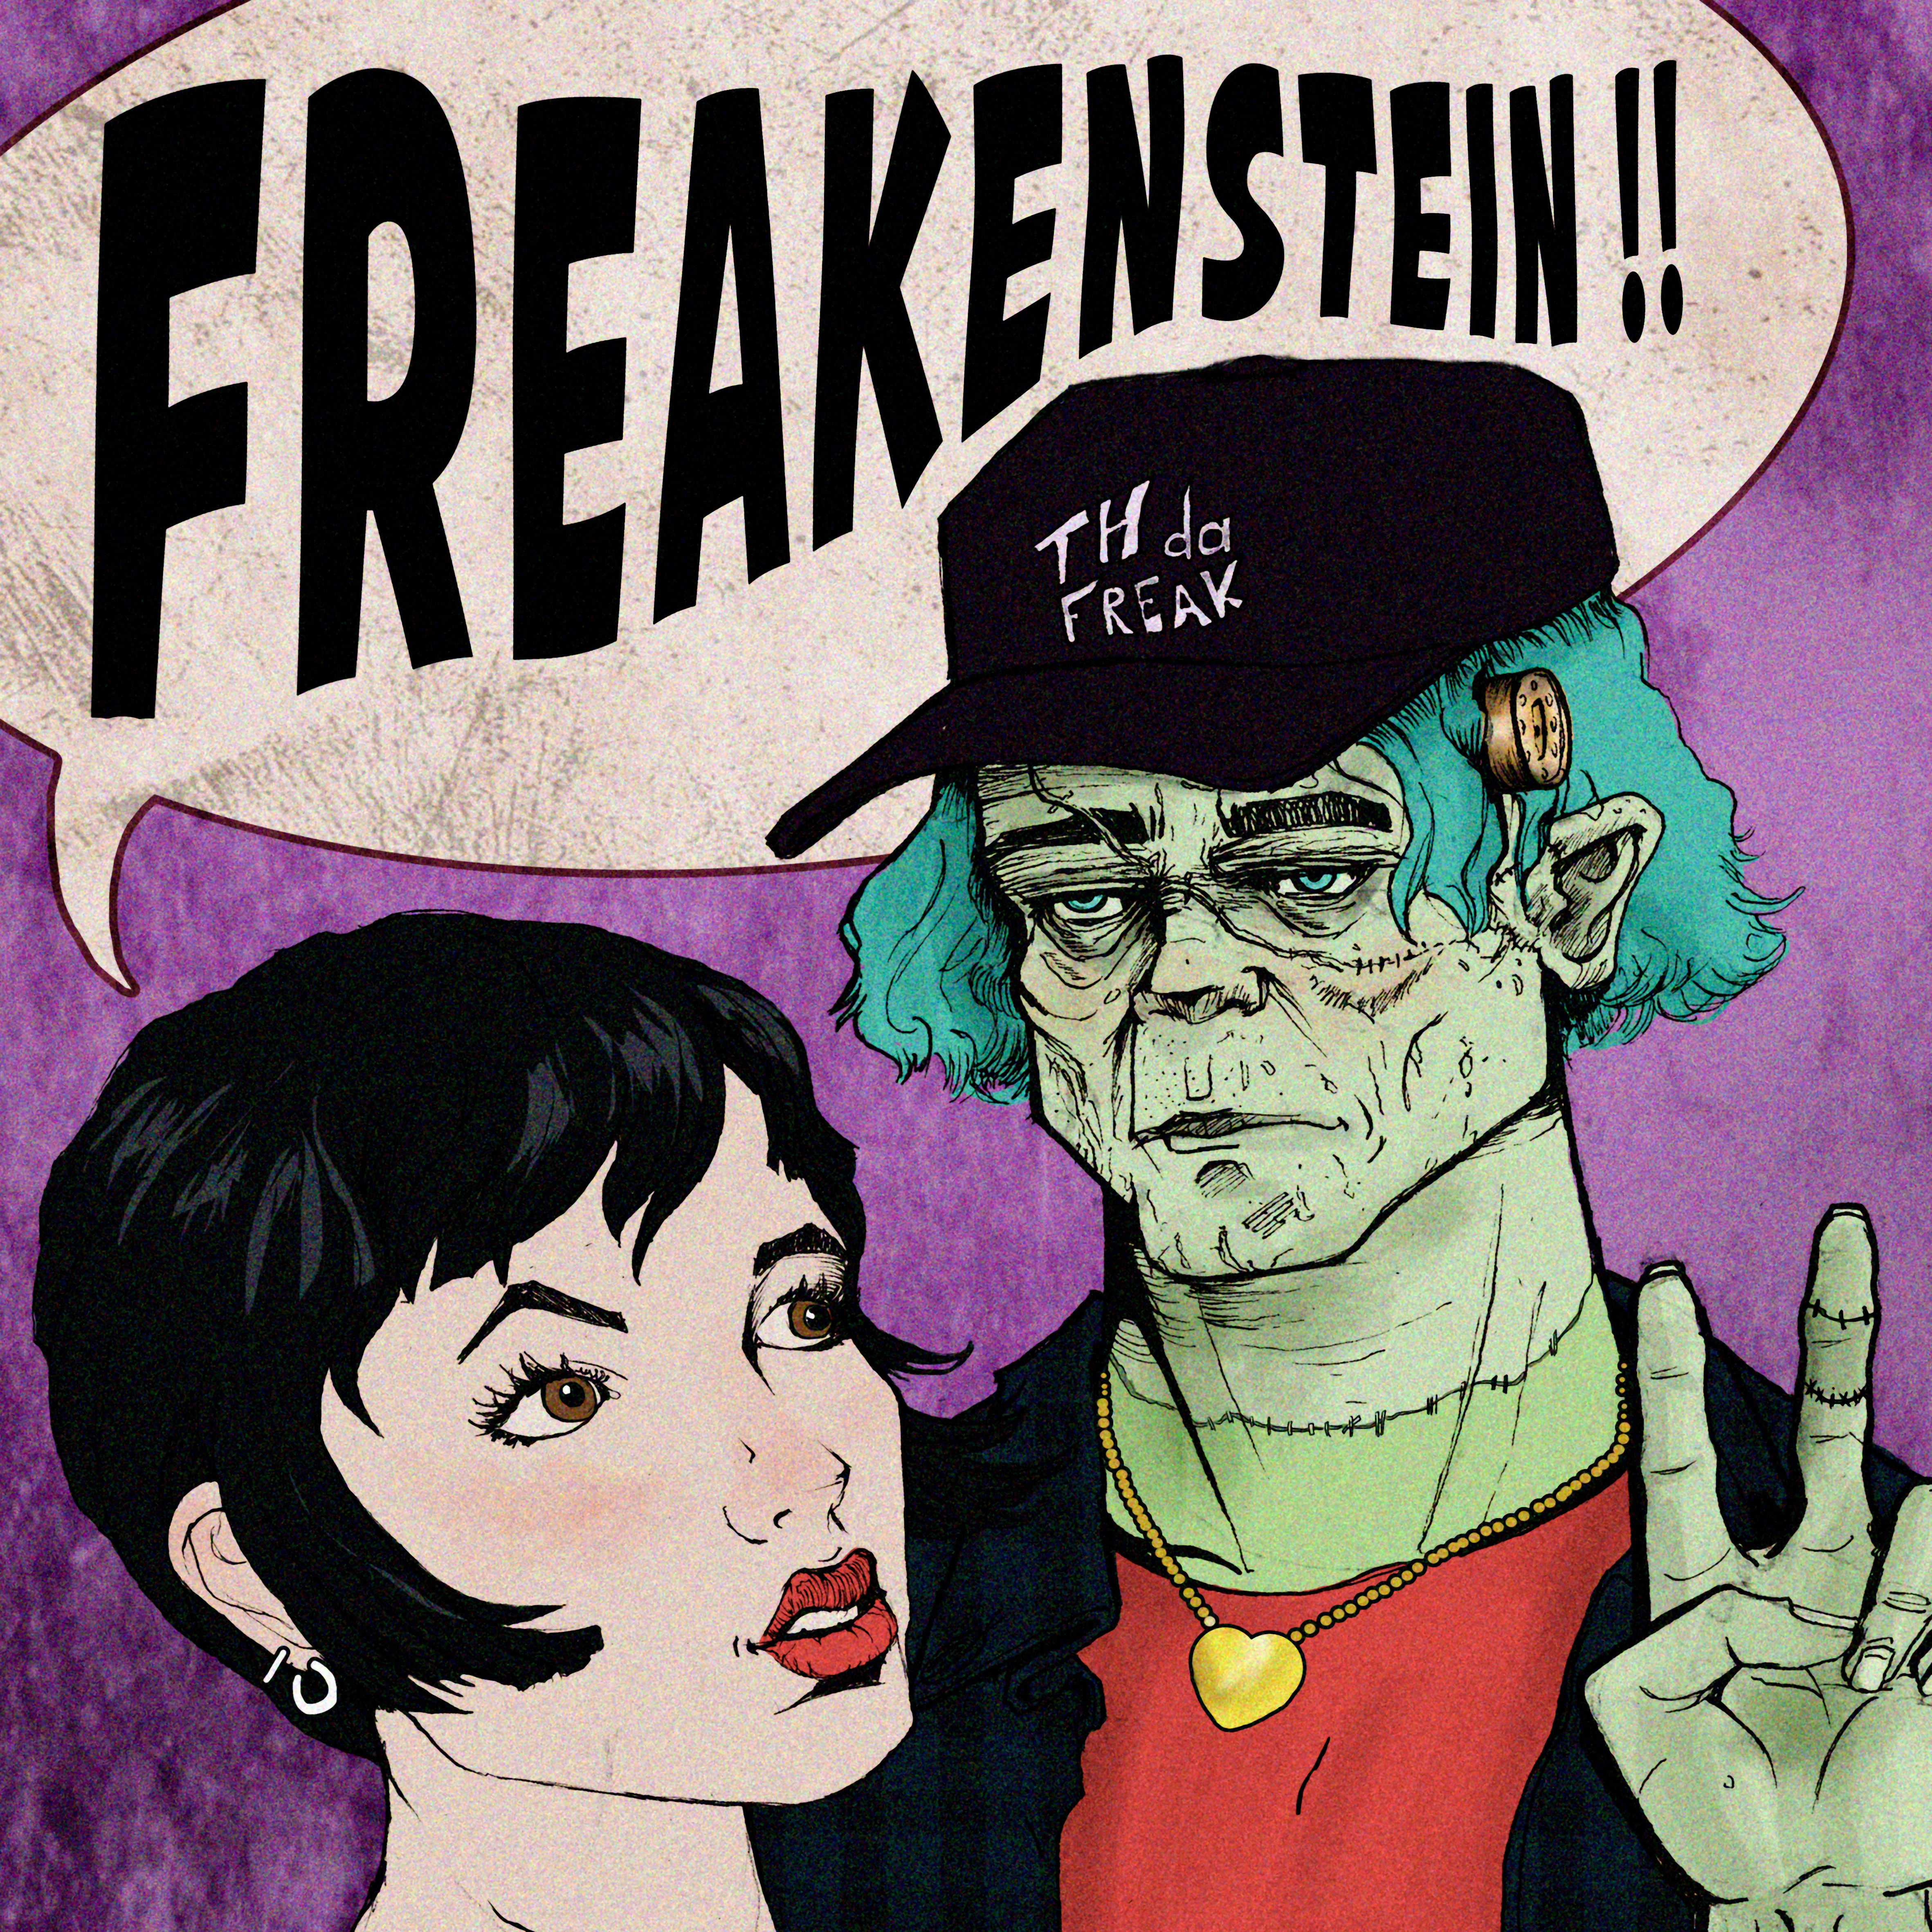 Th' Da Freak-Freakenstein